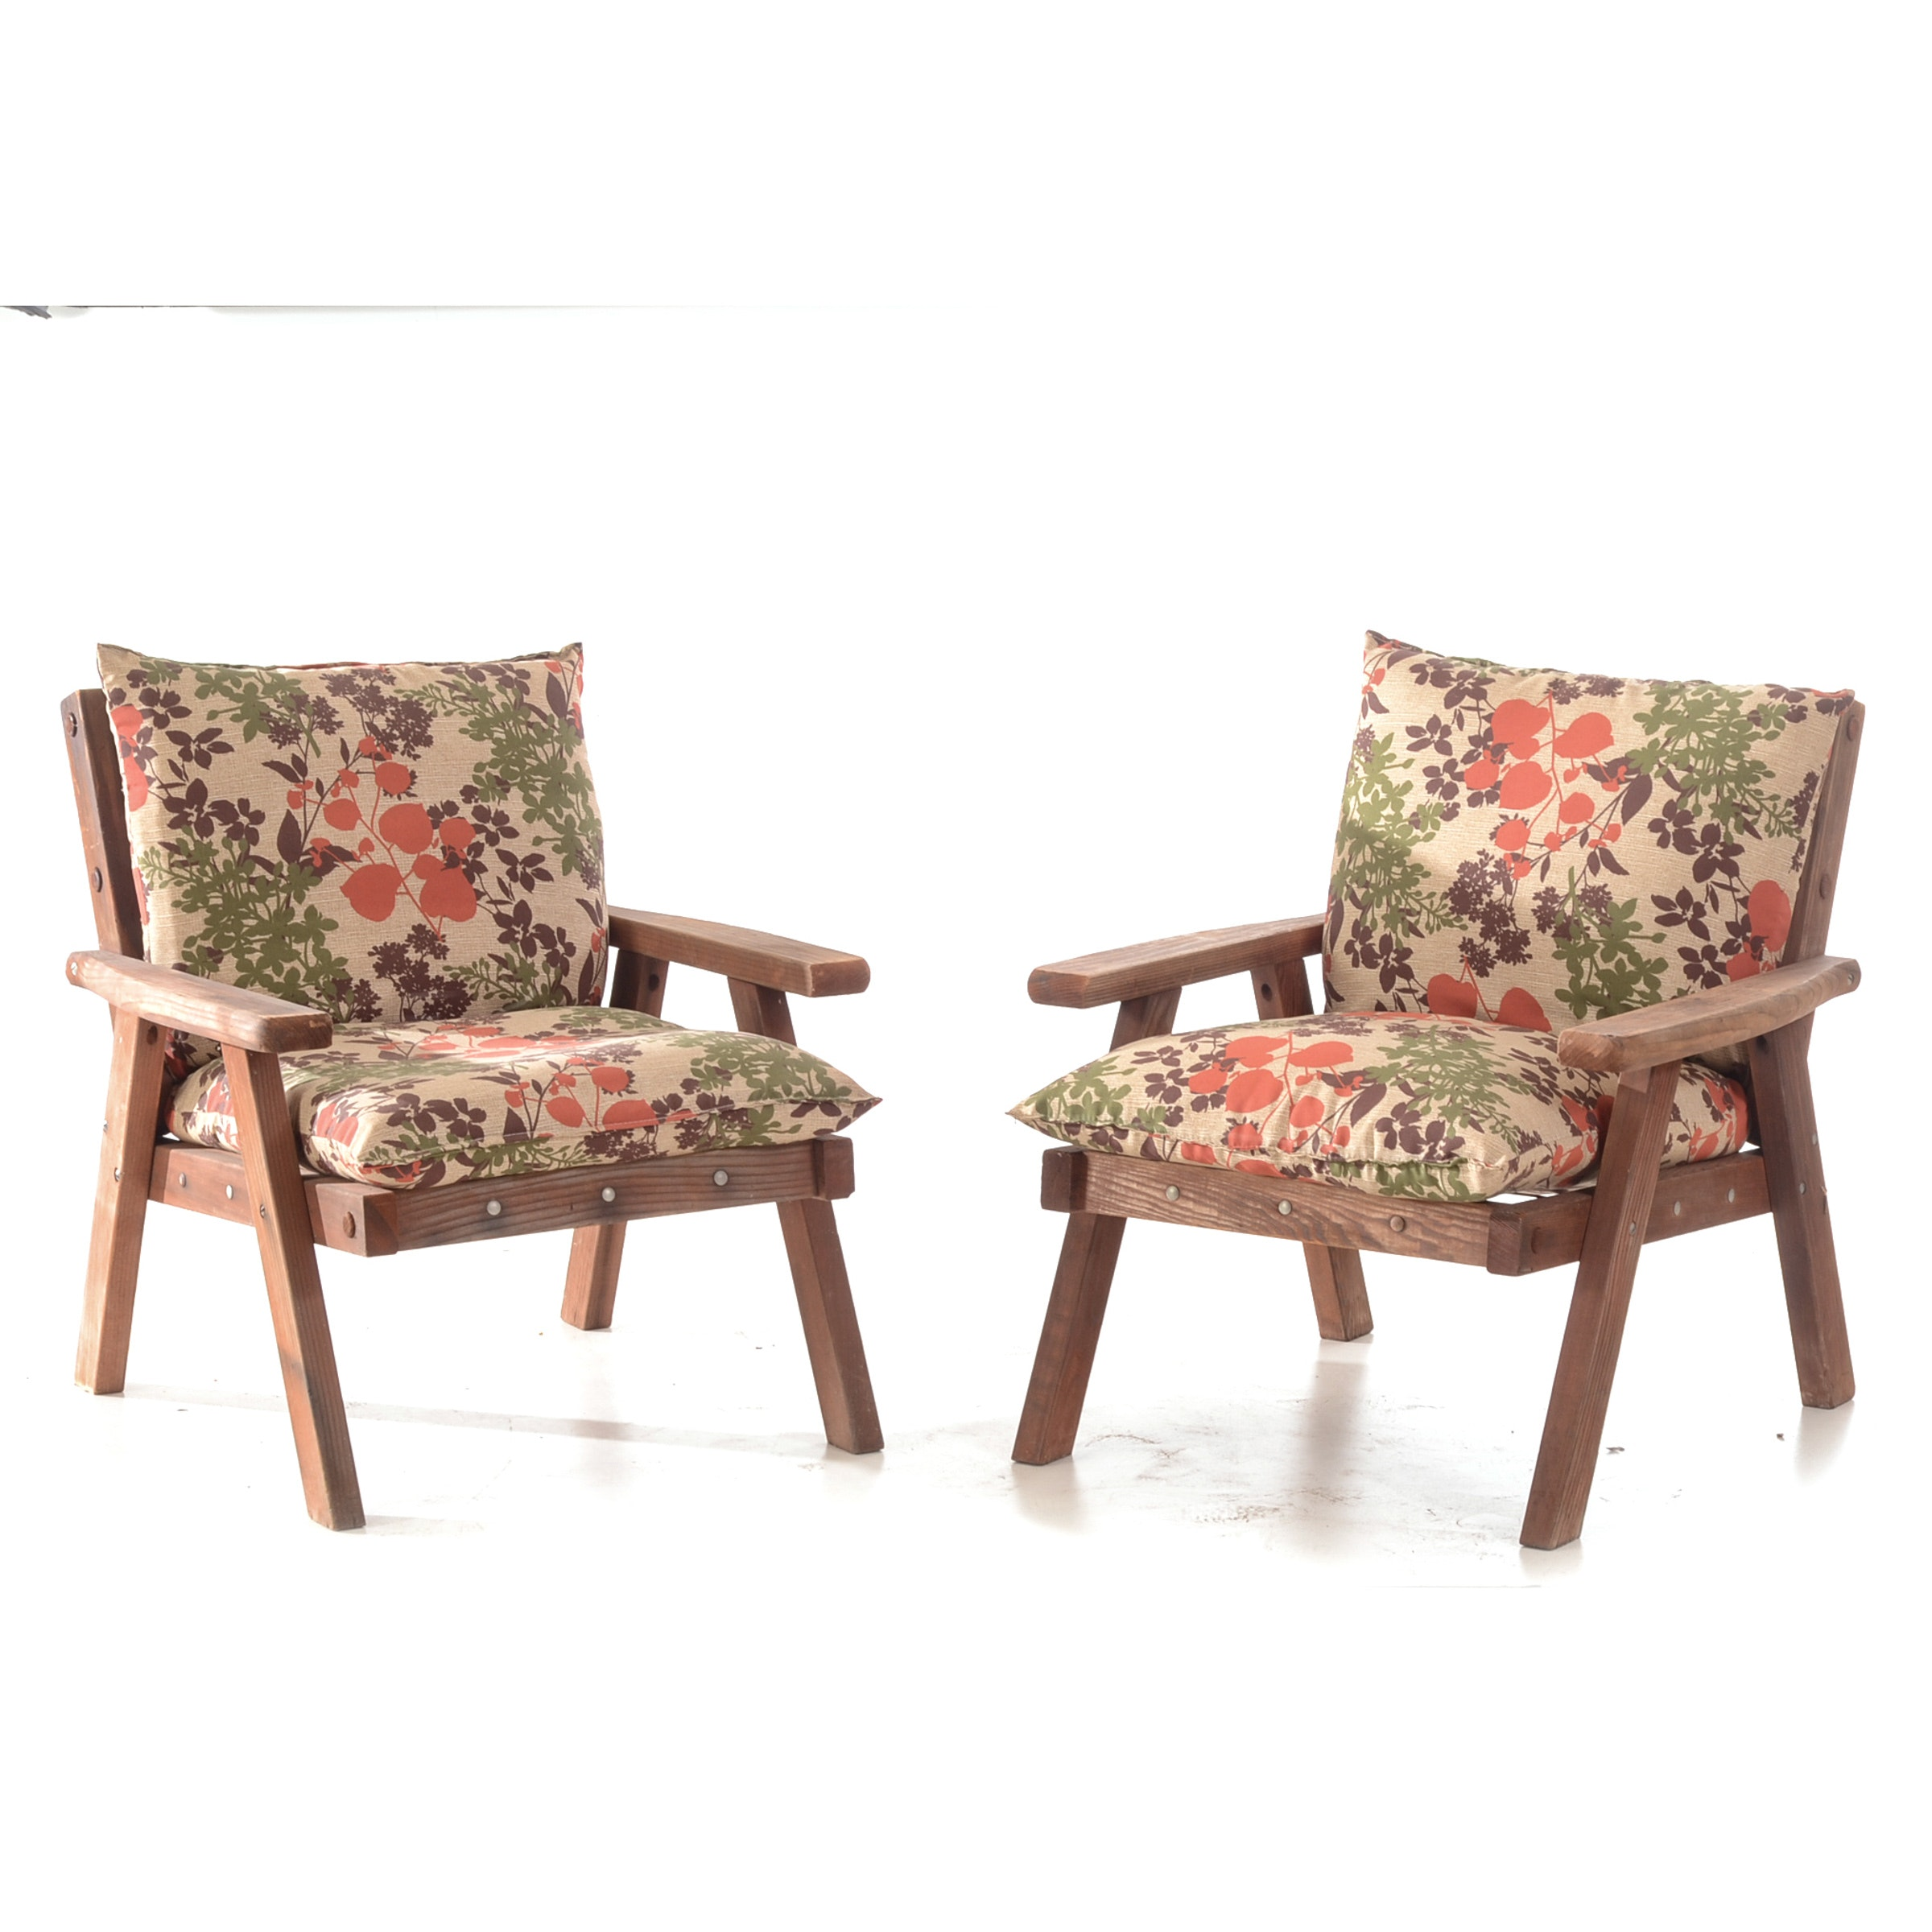 Pair of Mid-Century Redwood Lounge Chairs